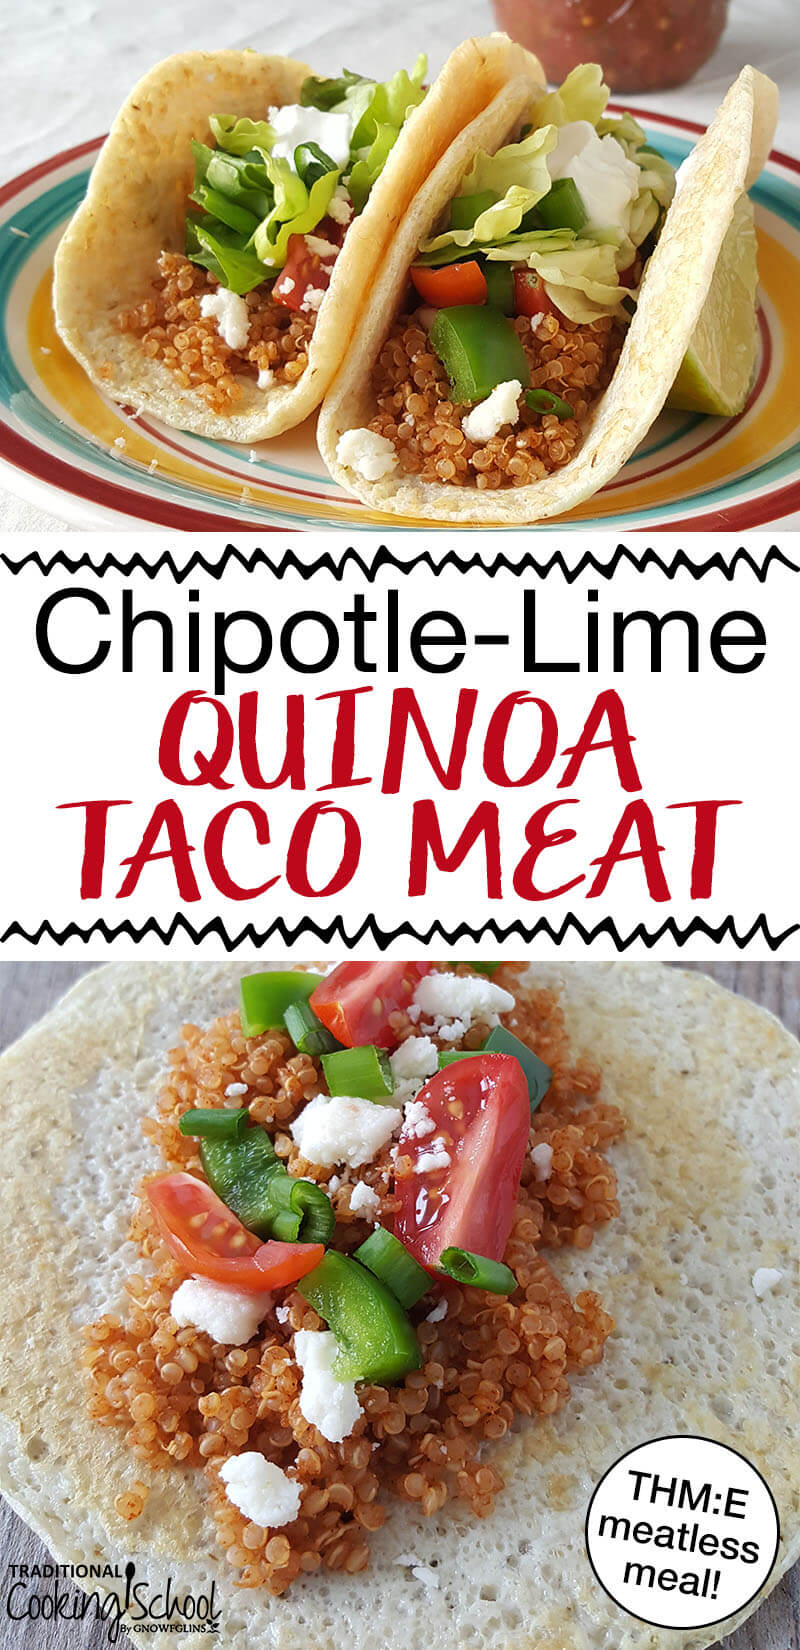 "photo collage of meatless tacos full of seasoned quinoa and garnishes of cheese and veggies with text overlay: ""Chipotle-Lime Quinoa Taco Meat"""